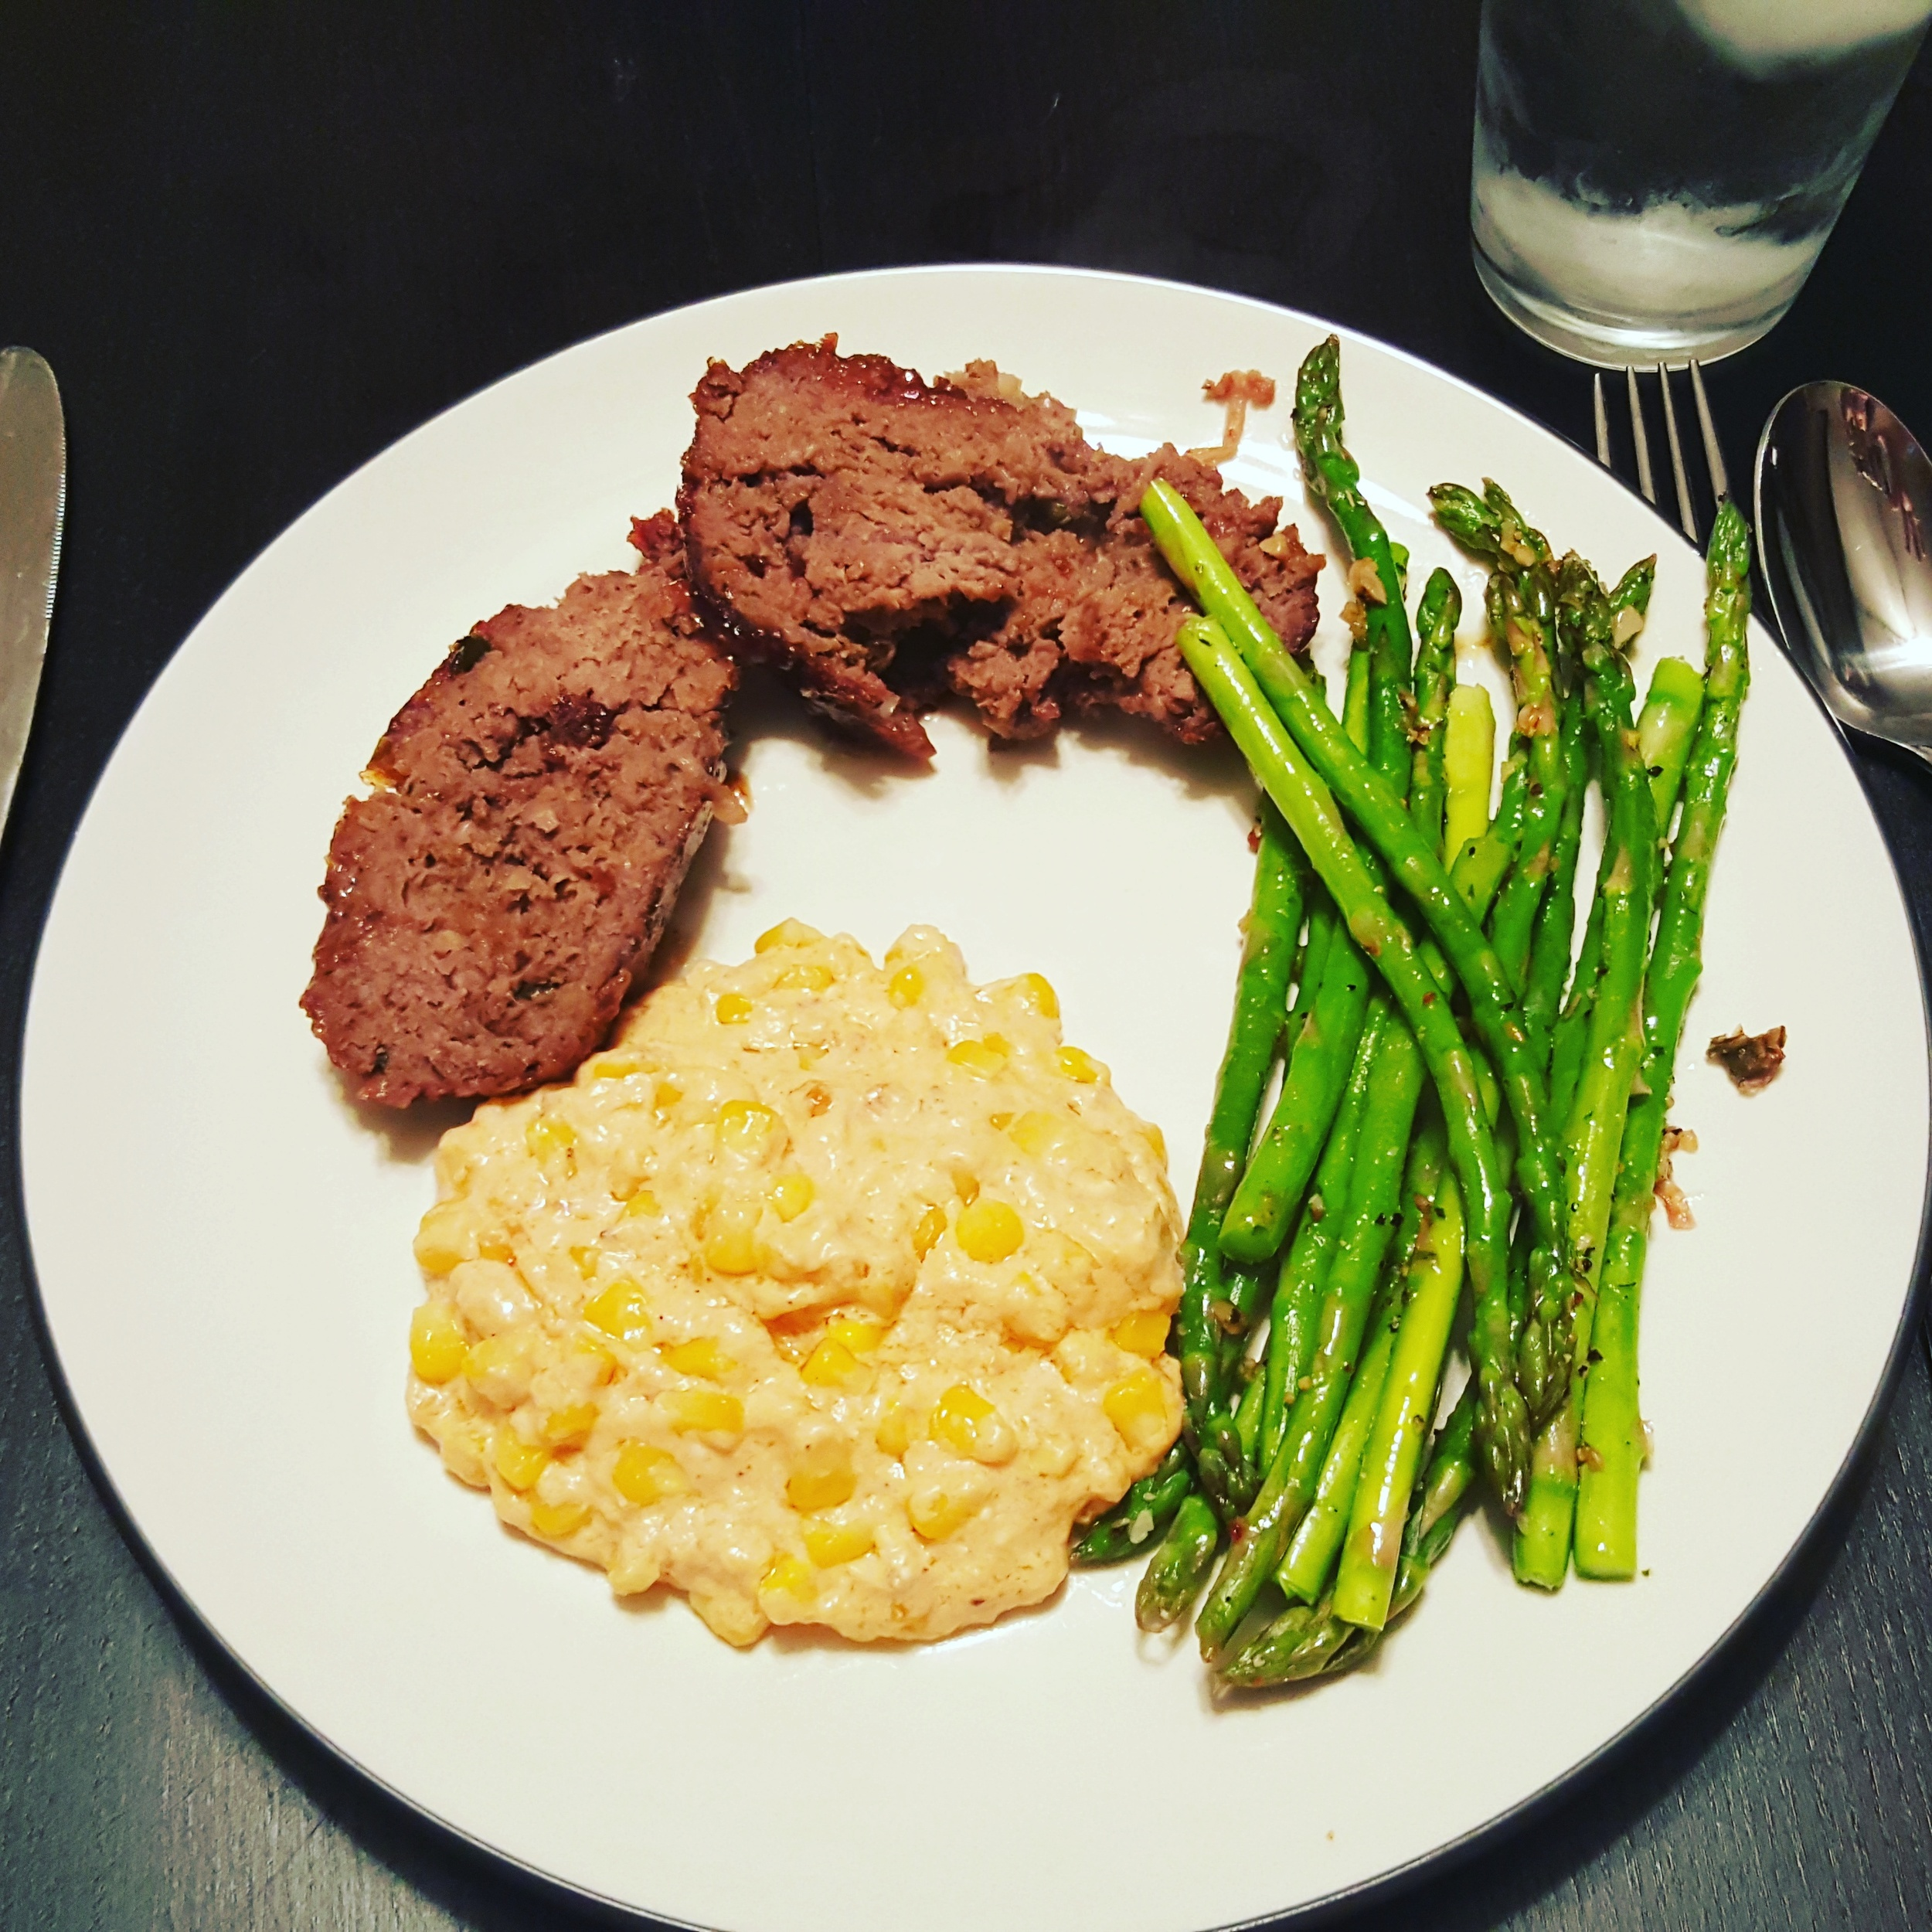 Meatloaf with a brown sugar BBQ bourbon glaze, sauteed asparagus, and cheddar creamed corn